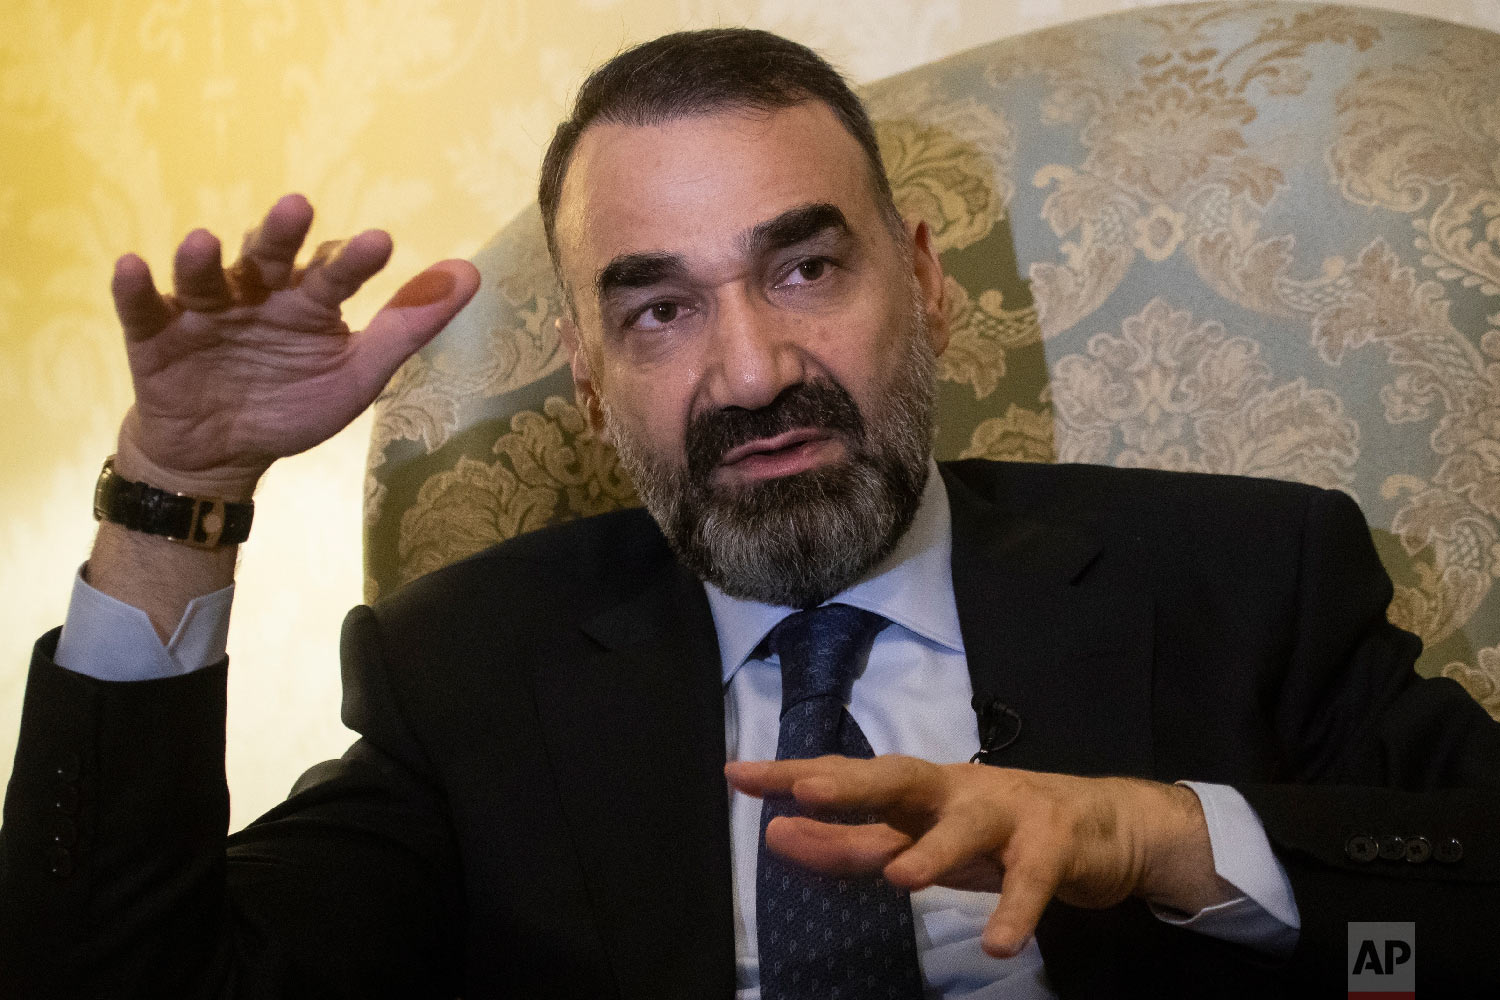 Ata Mohammad Noor, a former warlord who fought Soviet troops and served as governor of the northern Balkh province from 2004-2018, speaks during an interview with The Associated Press in Moscow, Russia on Feb. 8, 2019. (AP Photo/Pavel Golovkin)